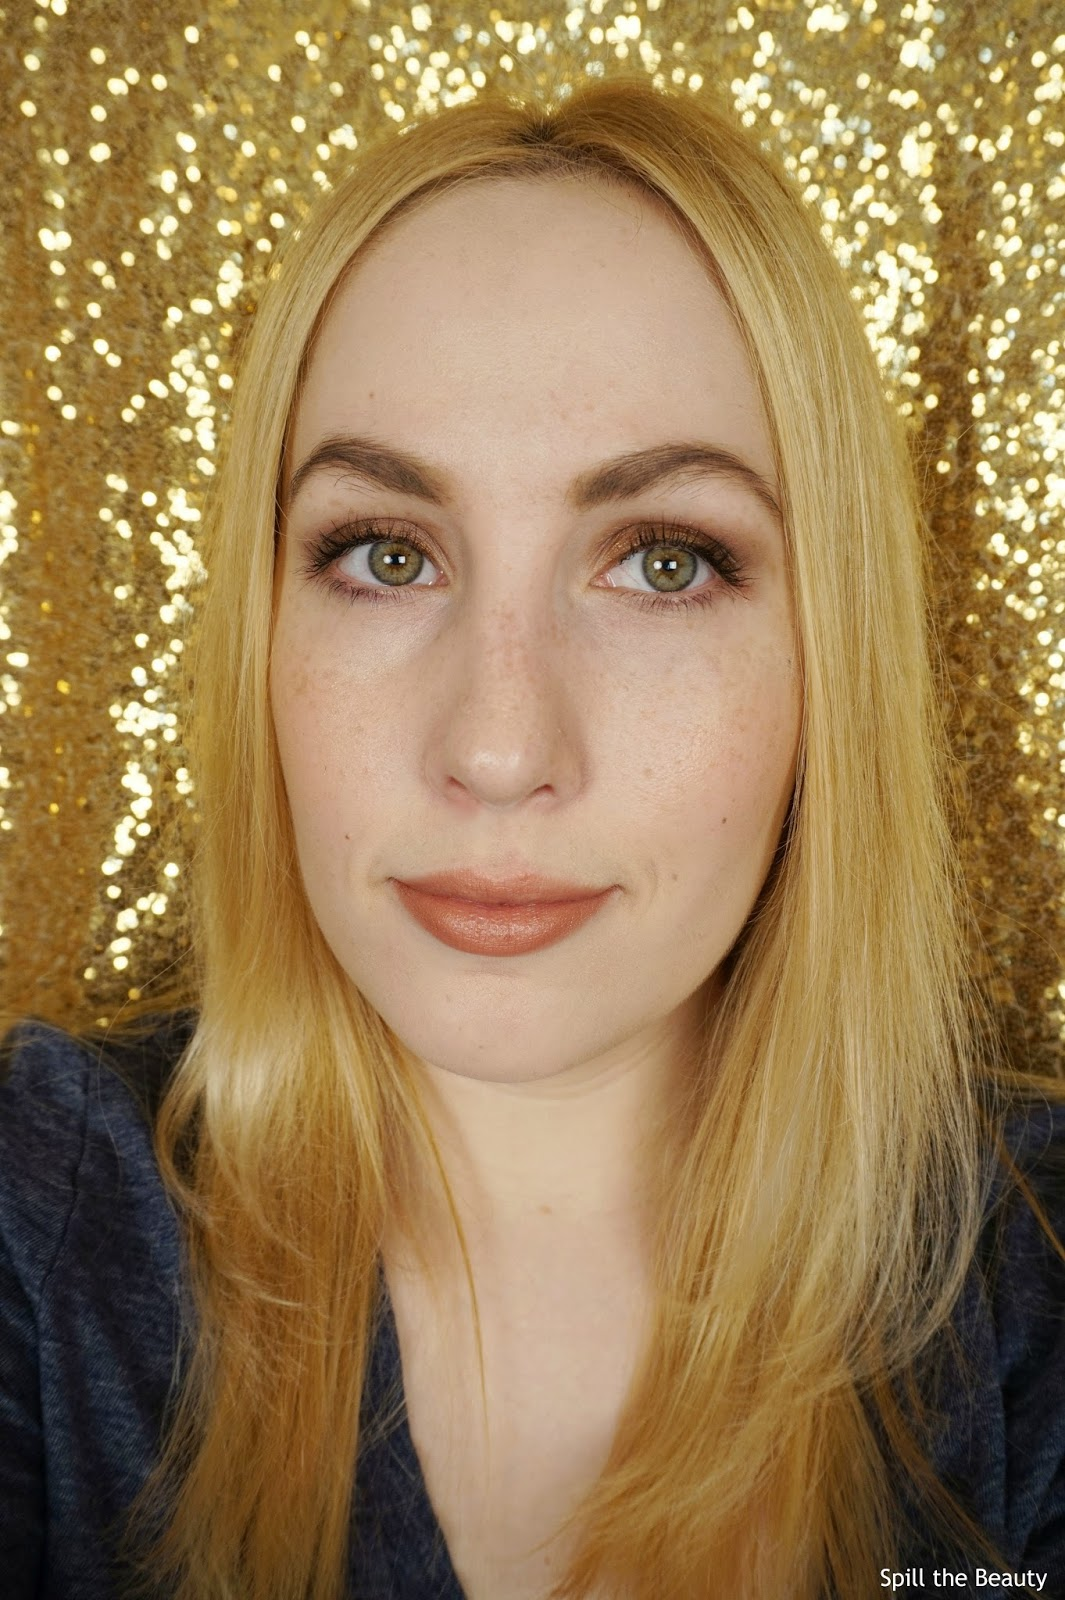 Charlotte Tilbury Quick 'N' Easy The 5 Minute Makeup Revolution